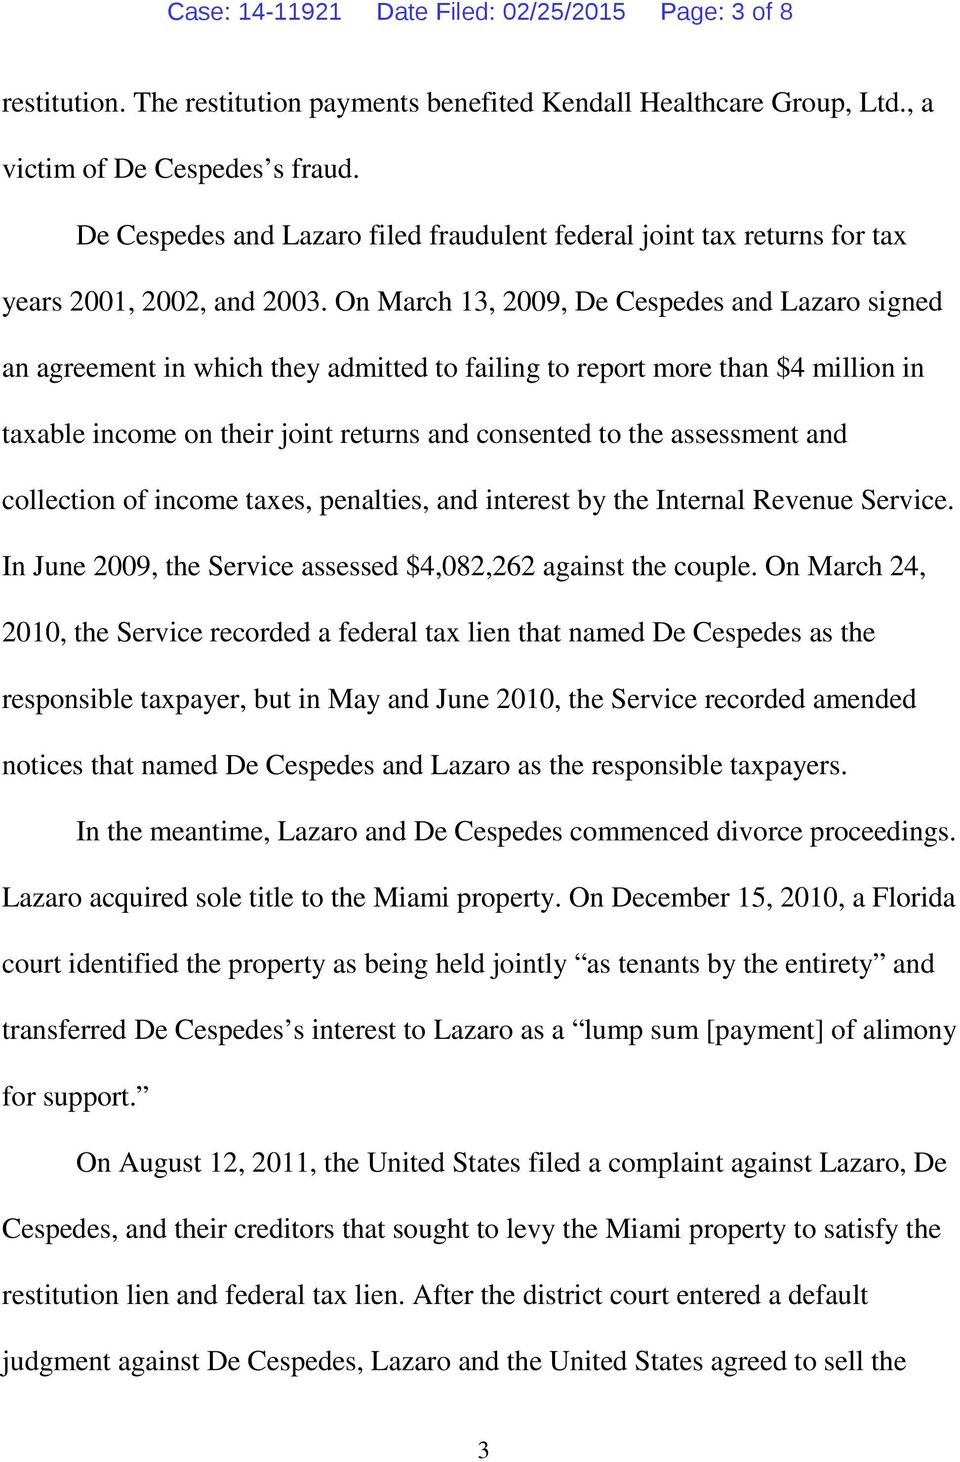 On March 13, 2009, De Cespedes and Lazaro signed an agreement in which they admitted to failing to report more than $4 million in taxable income on their joint returns and consented to the assessment